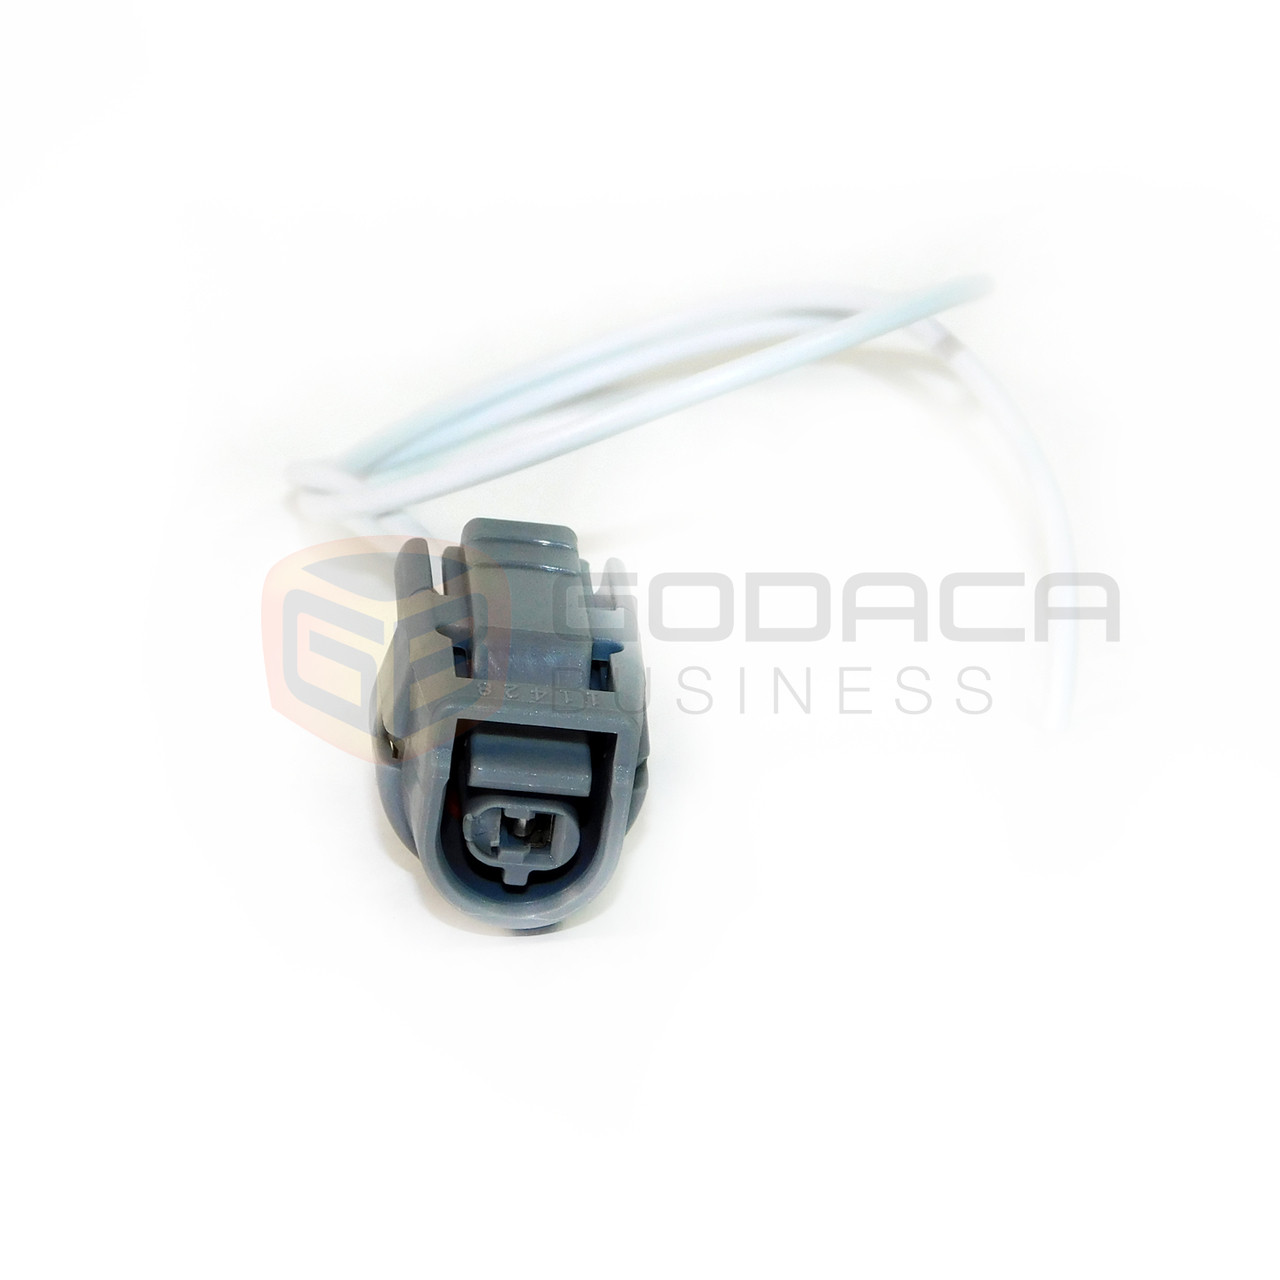 1x connector temperature sensor for toyota 2jz 90980 11428 with wire godaca llc  [ 1280 x 1280 Pixel ]